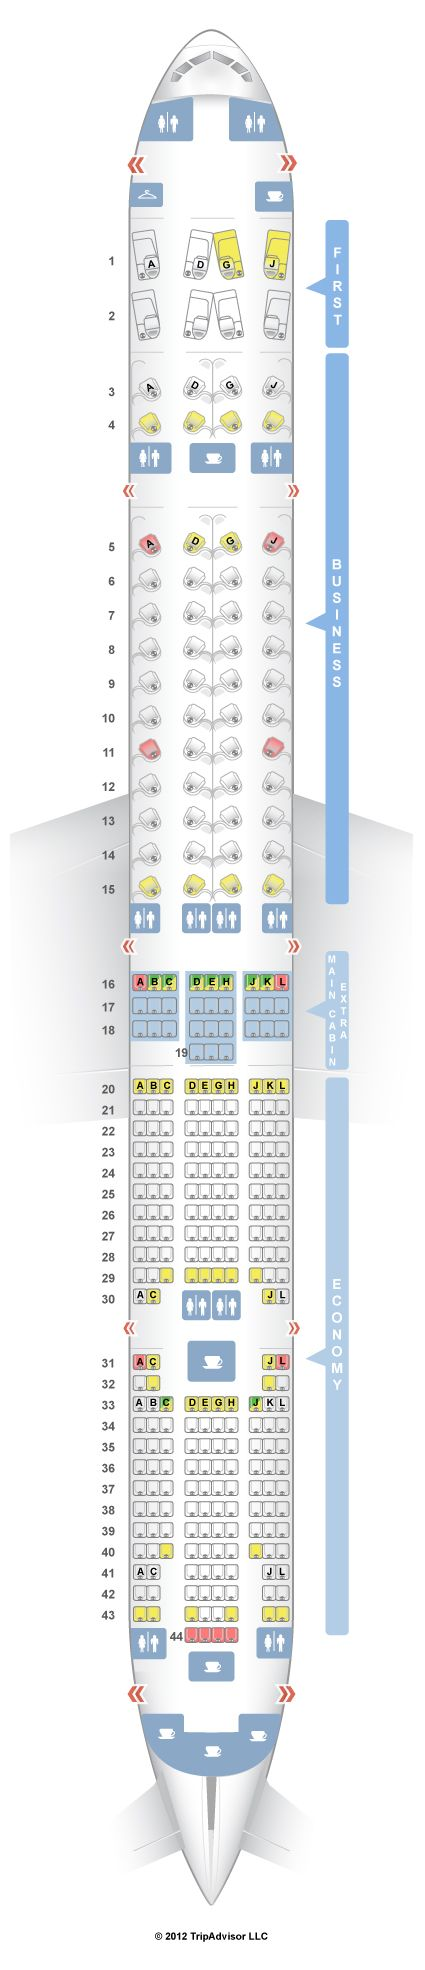 SeatGuru Seat Map American Airlines Boeing ER W - Airline flights map of france to us